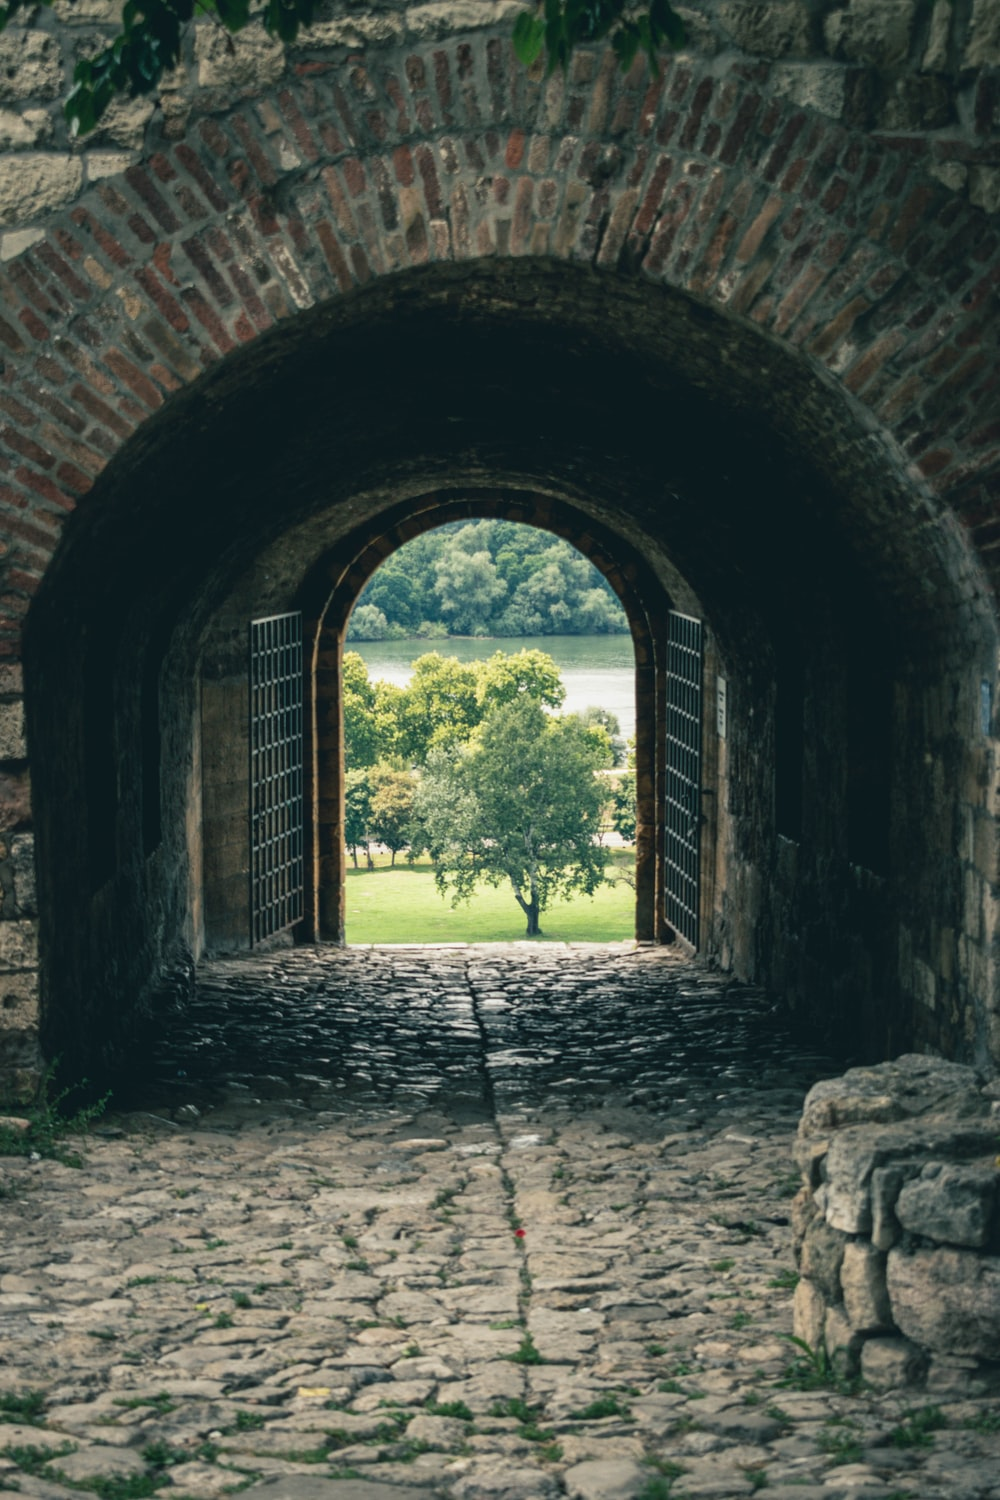 brown brick tunnel with green trees